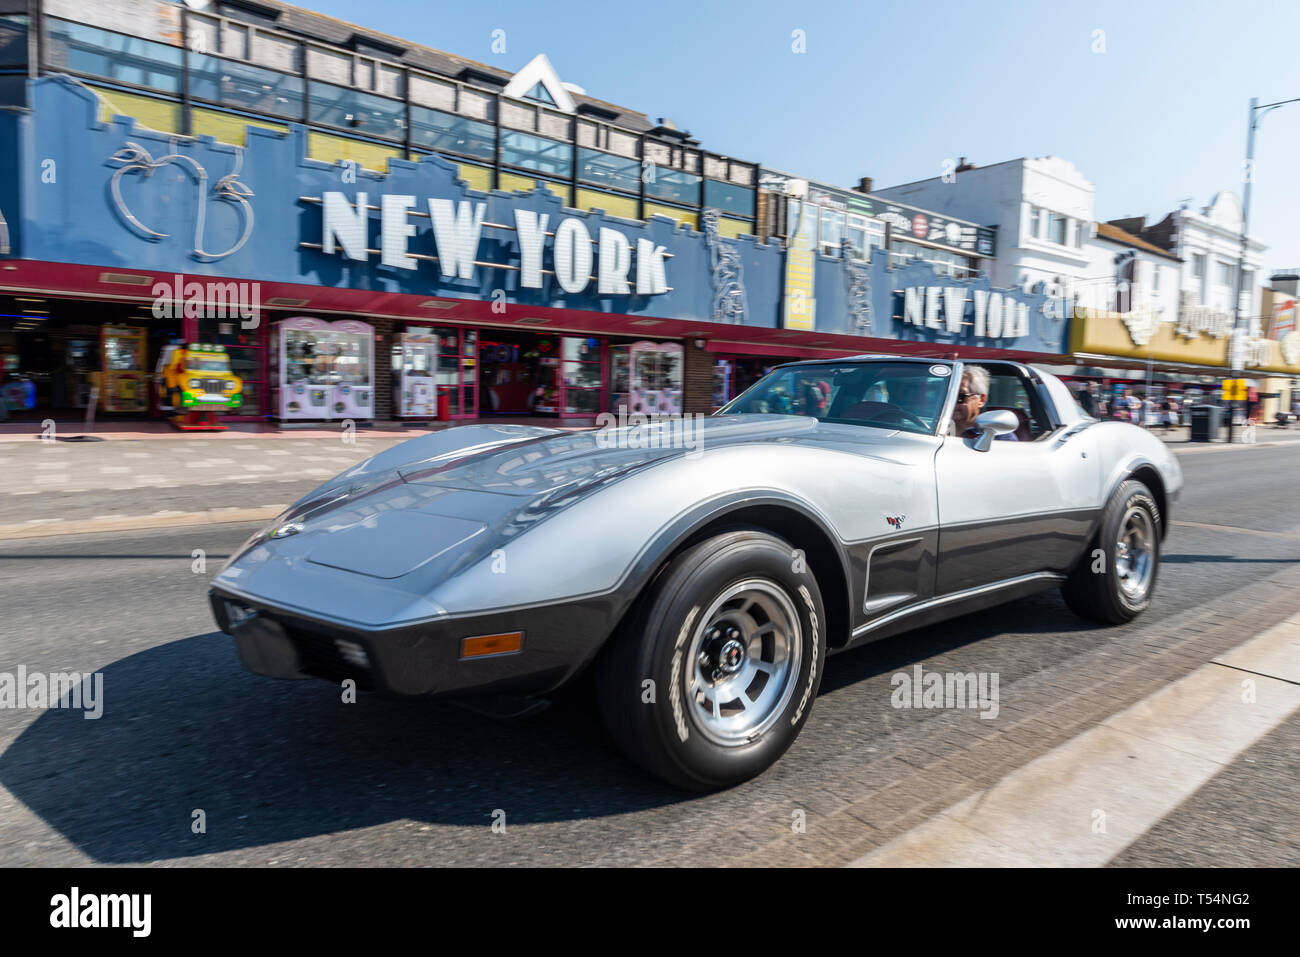 classic-car-show-taking-place-along-the-seafront-at-marine-parade-southend-on-sea-essex-uk-chevrolet-corvette-stingray-driving-past-new-york-amusement-arcade-T54NG2.jpg